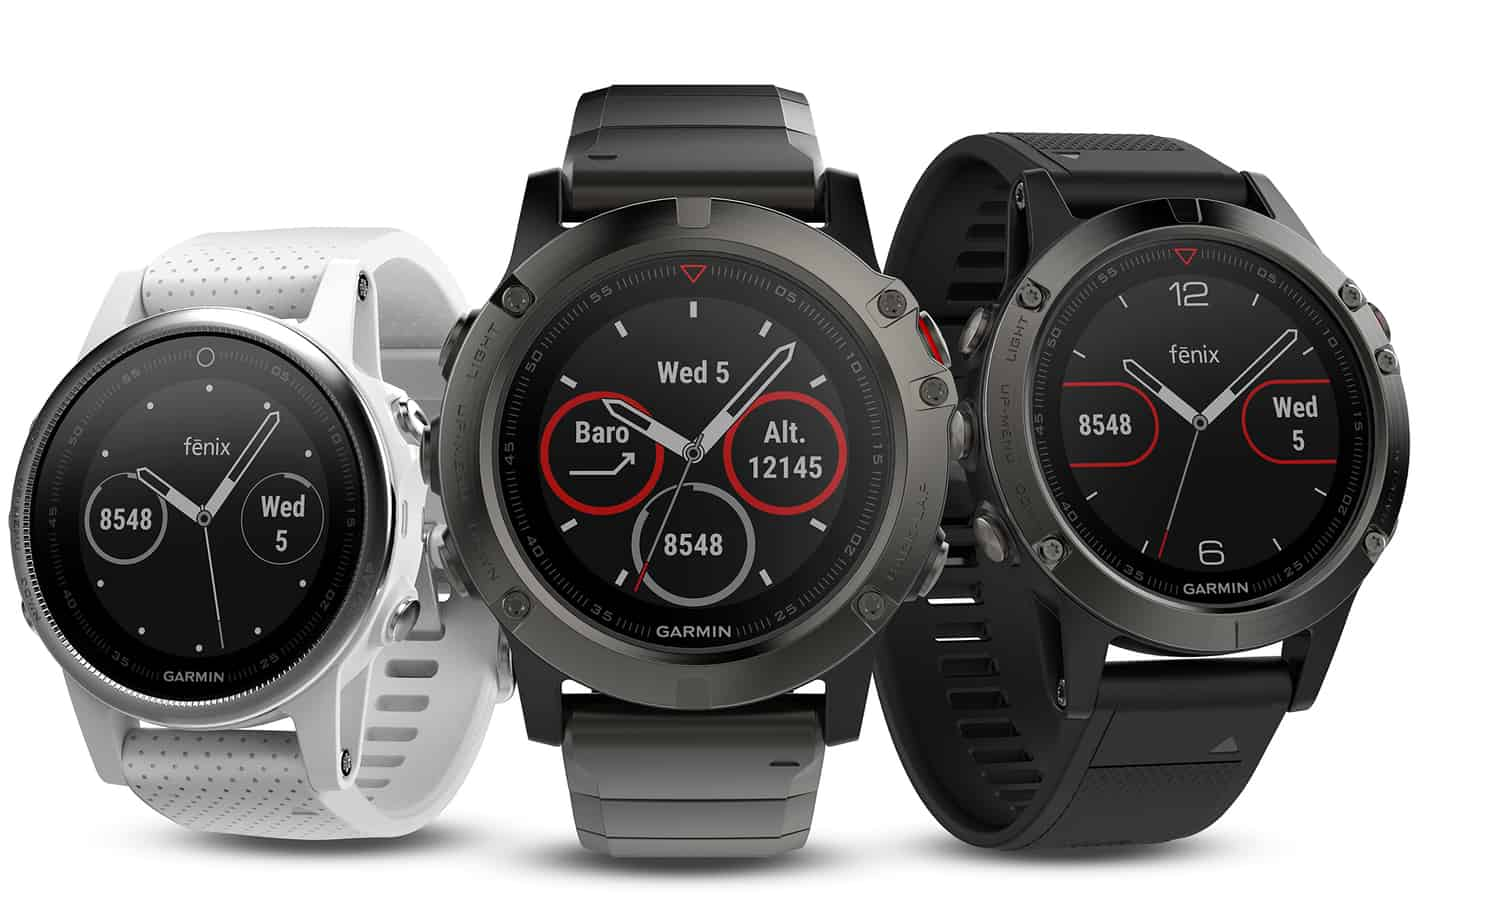 Image of the Garmin Fenix 5 golf watch. Golf watch with clear screen.